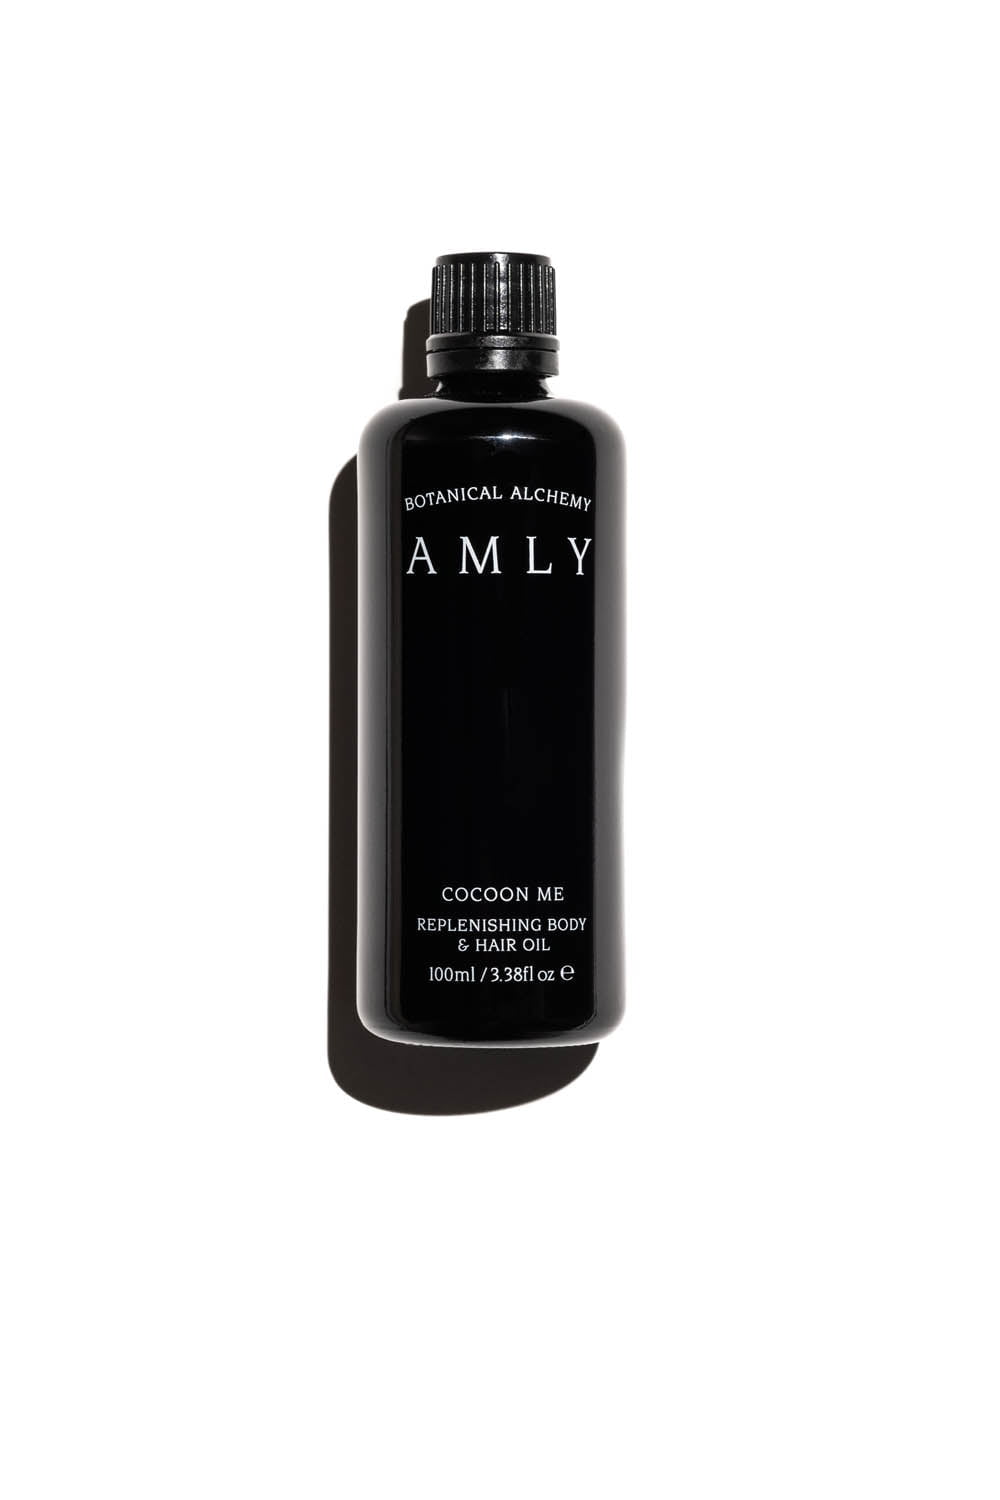 cocoon me body and hair oil AMLY 100ml bottle